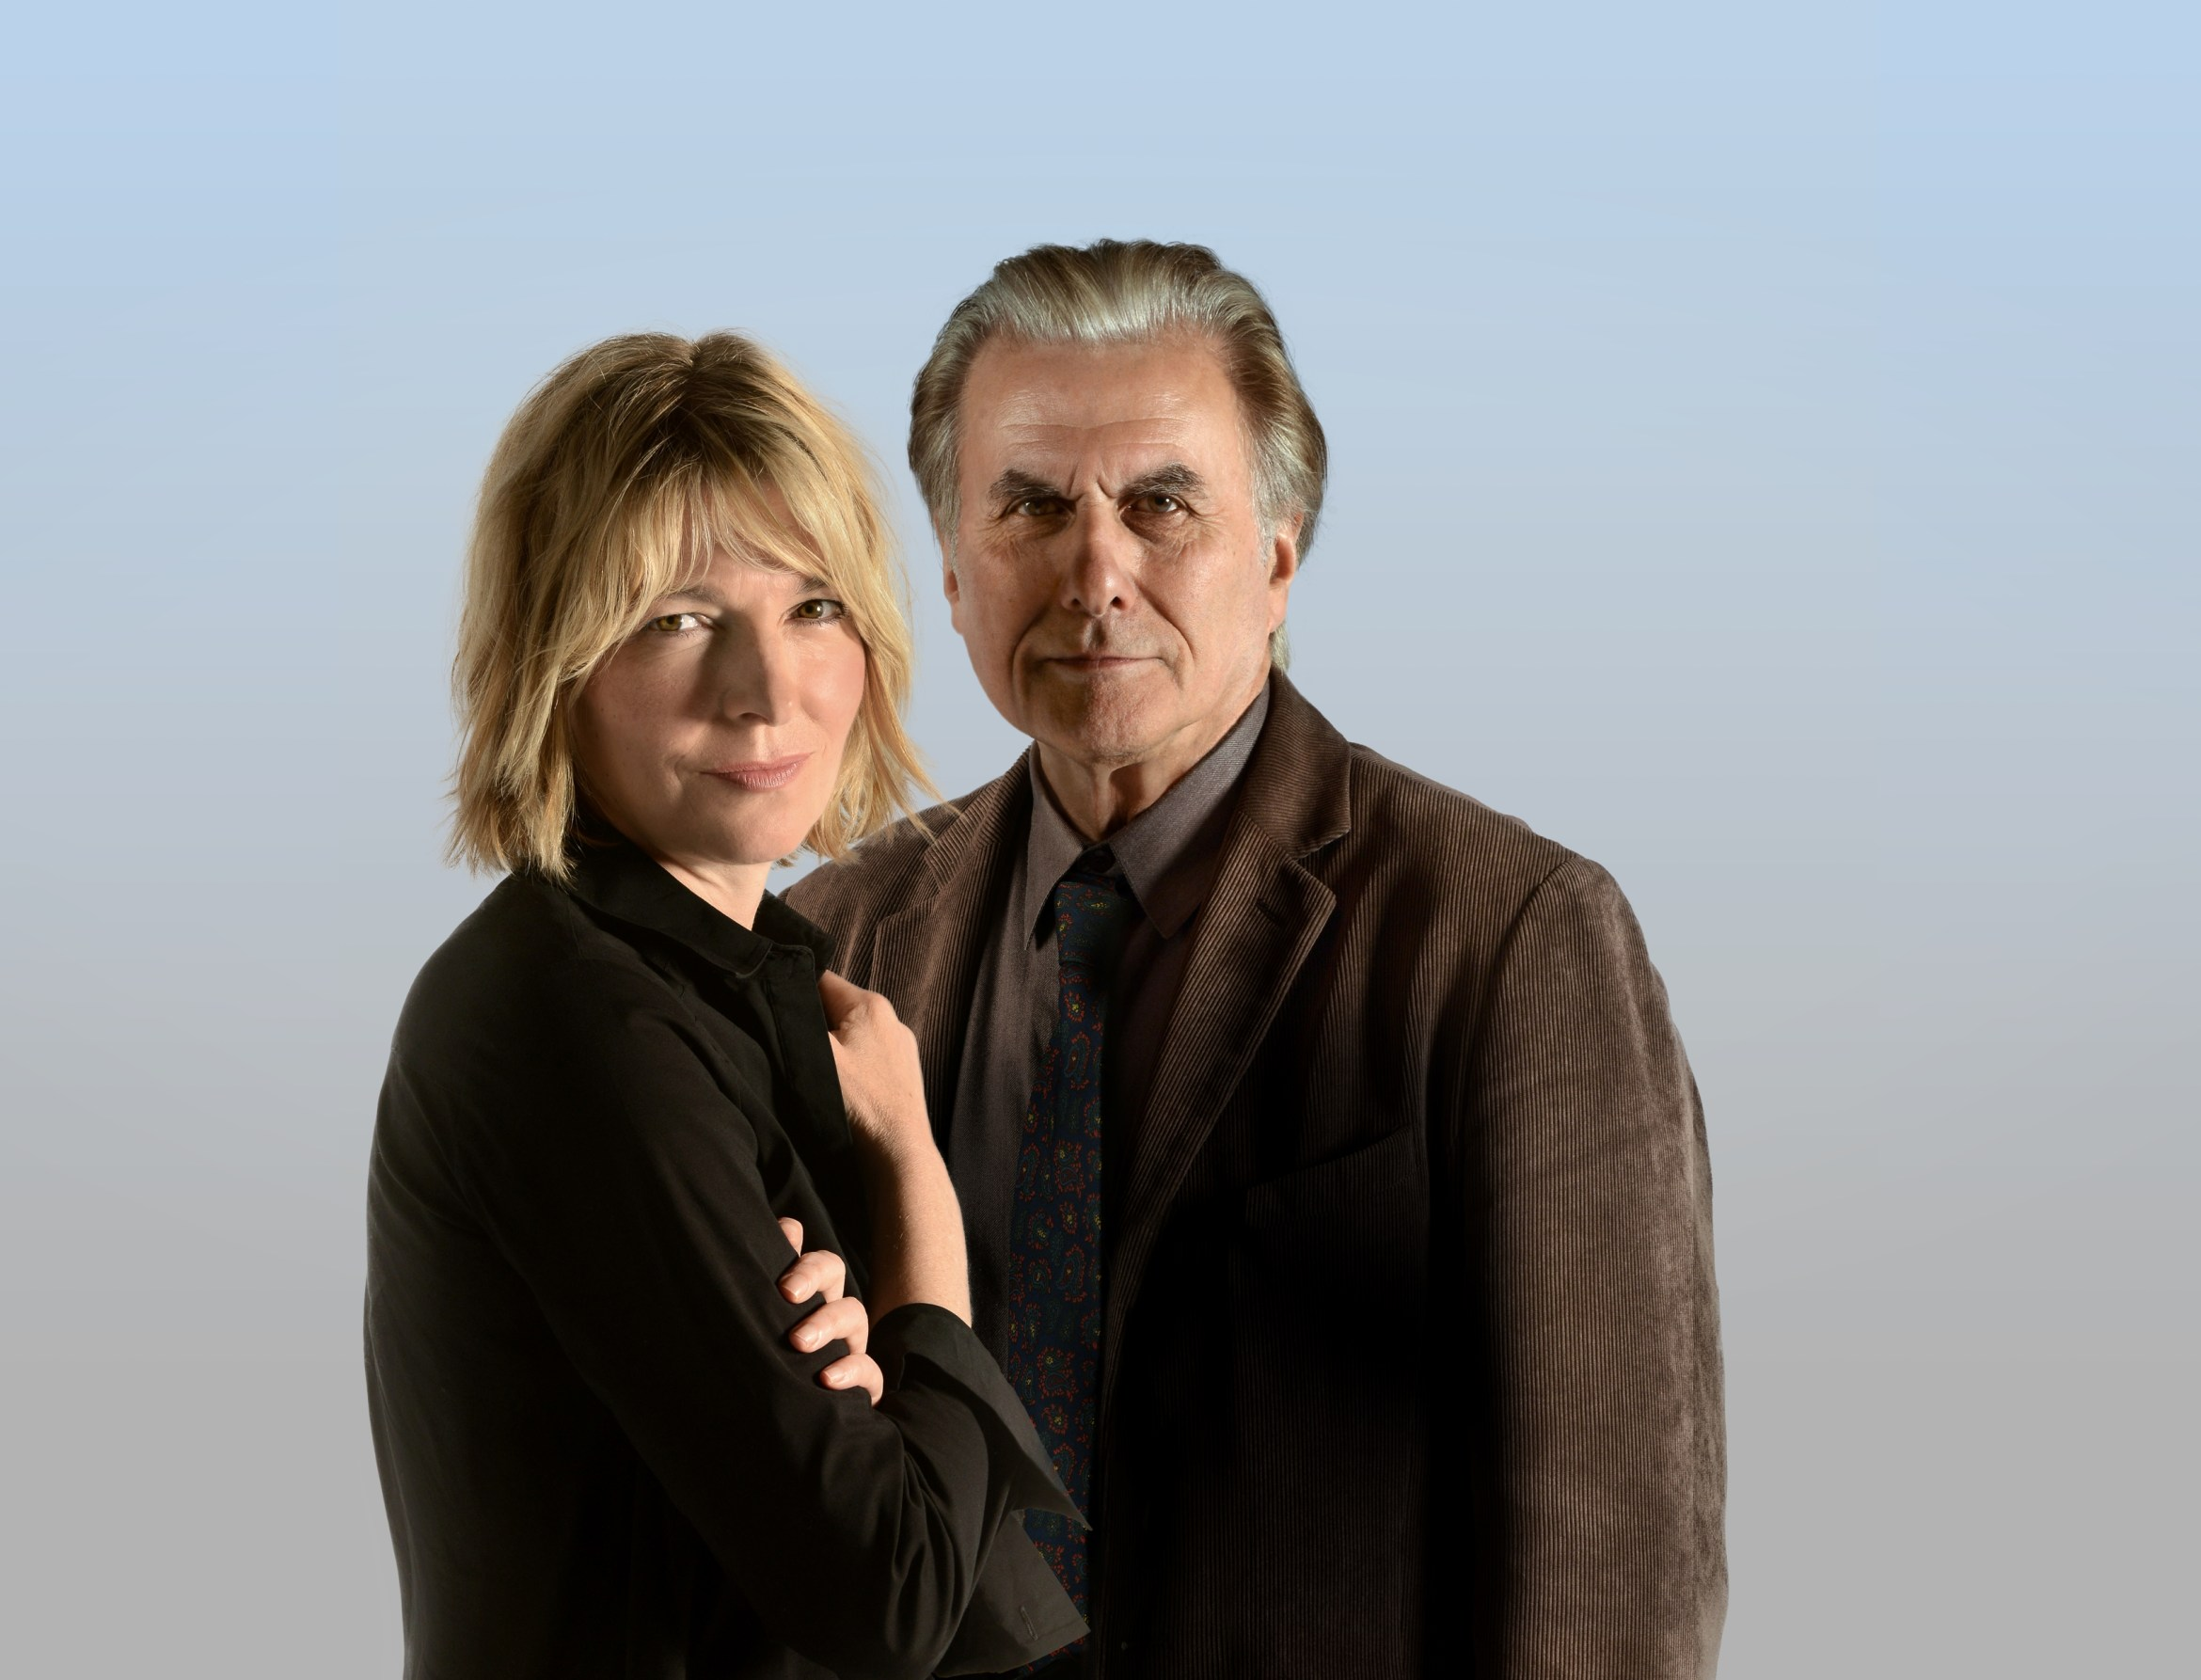 Jemma Redgrave & Oliver Cotton DUET FOR ONE credit Robert Day